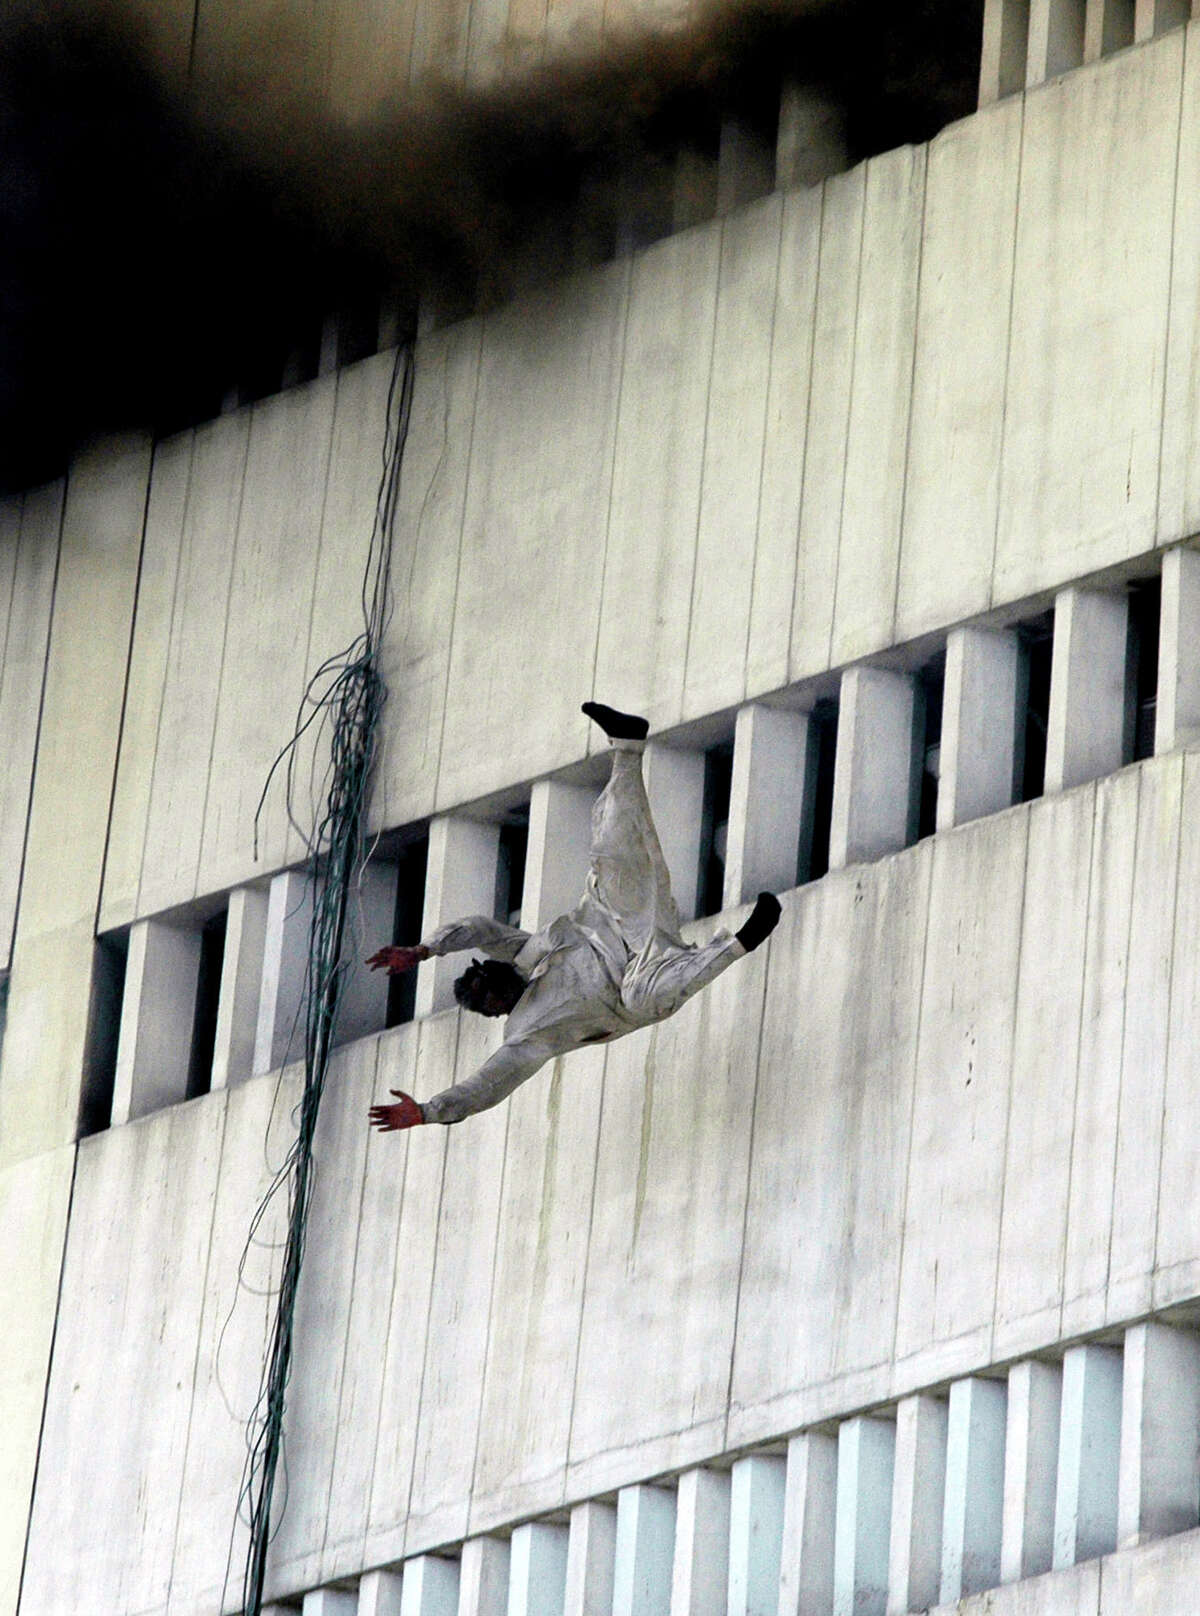 A man jumps from the fifth floor of a burning government building in Lahore, Pakistan on Thursday, May 9, 2013. The fire spread to to three floors of the 13-story building.